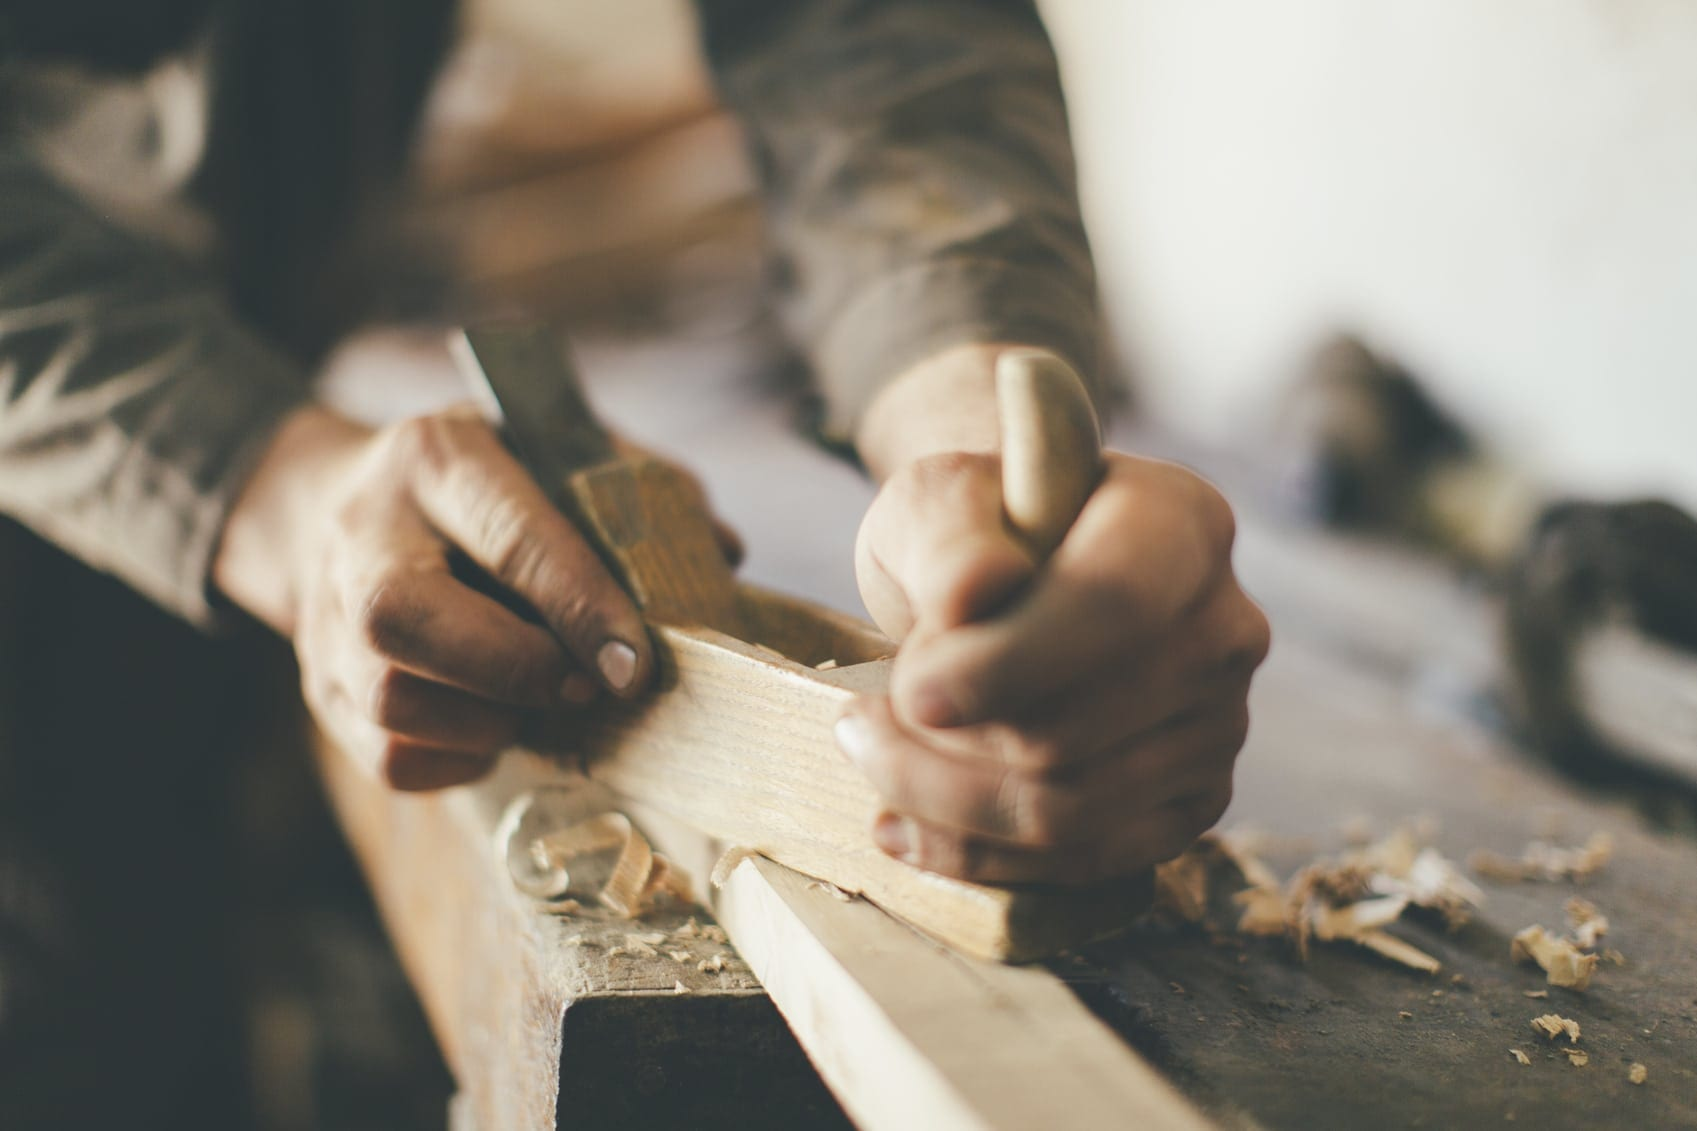 Man Cutting Wood Inside Wood Shop Stock Photo